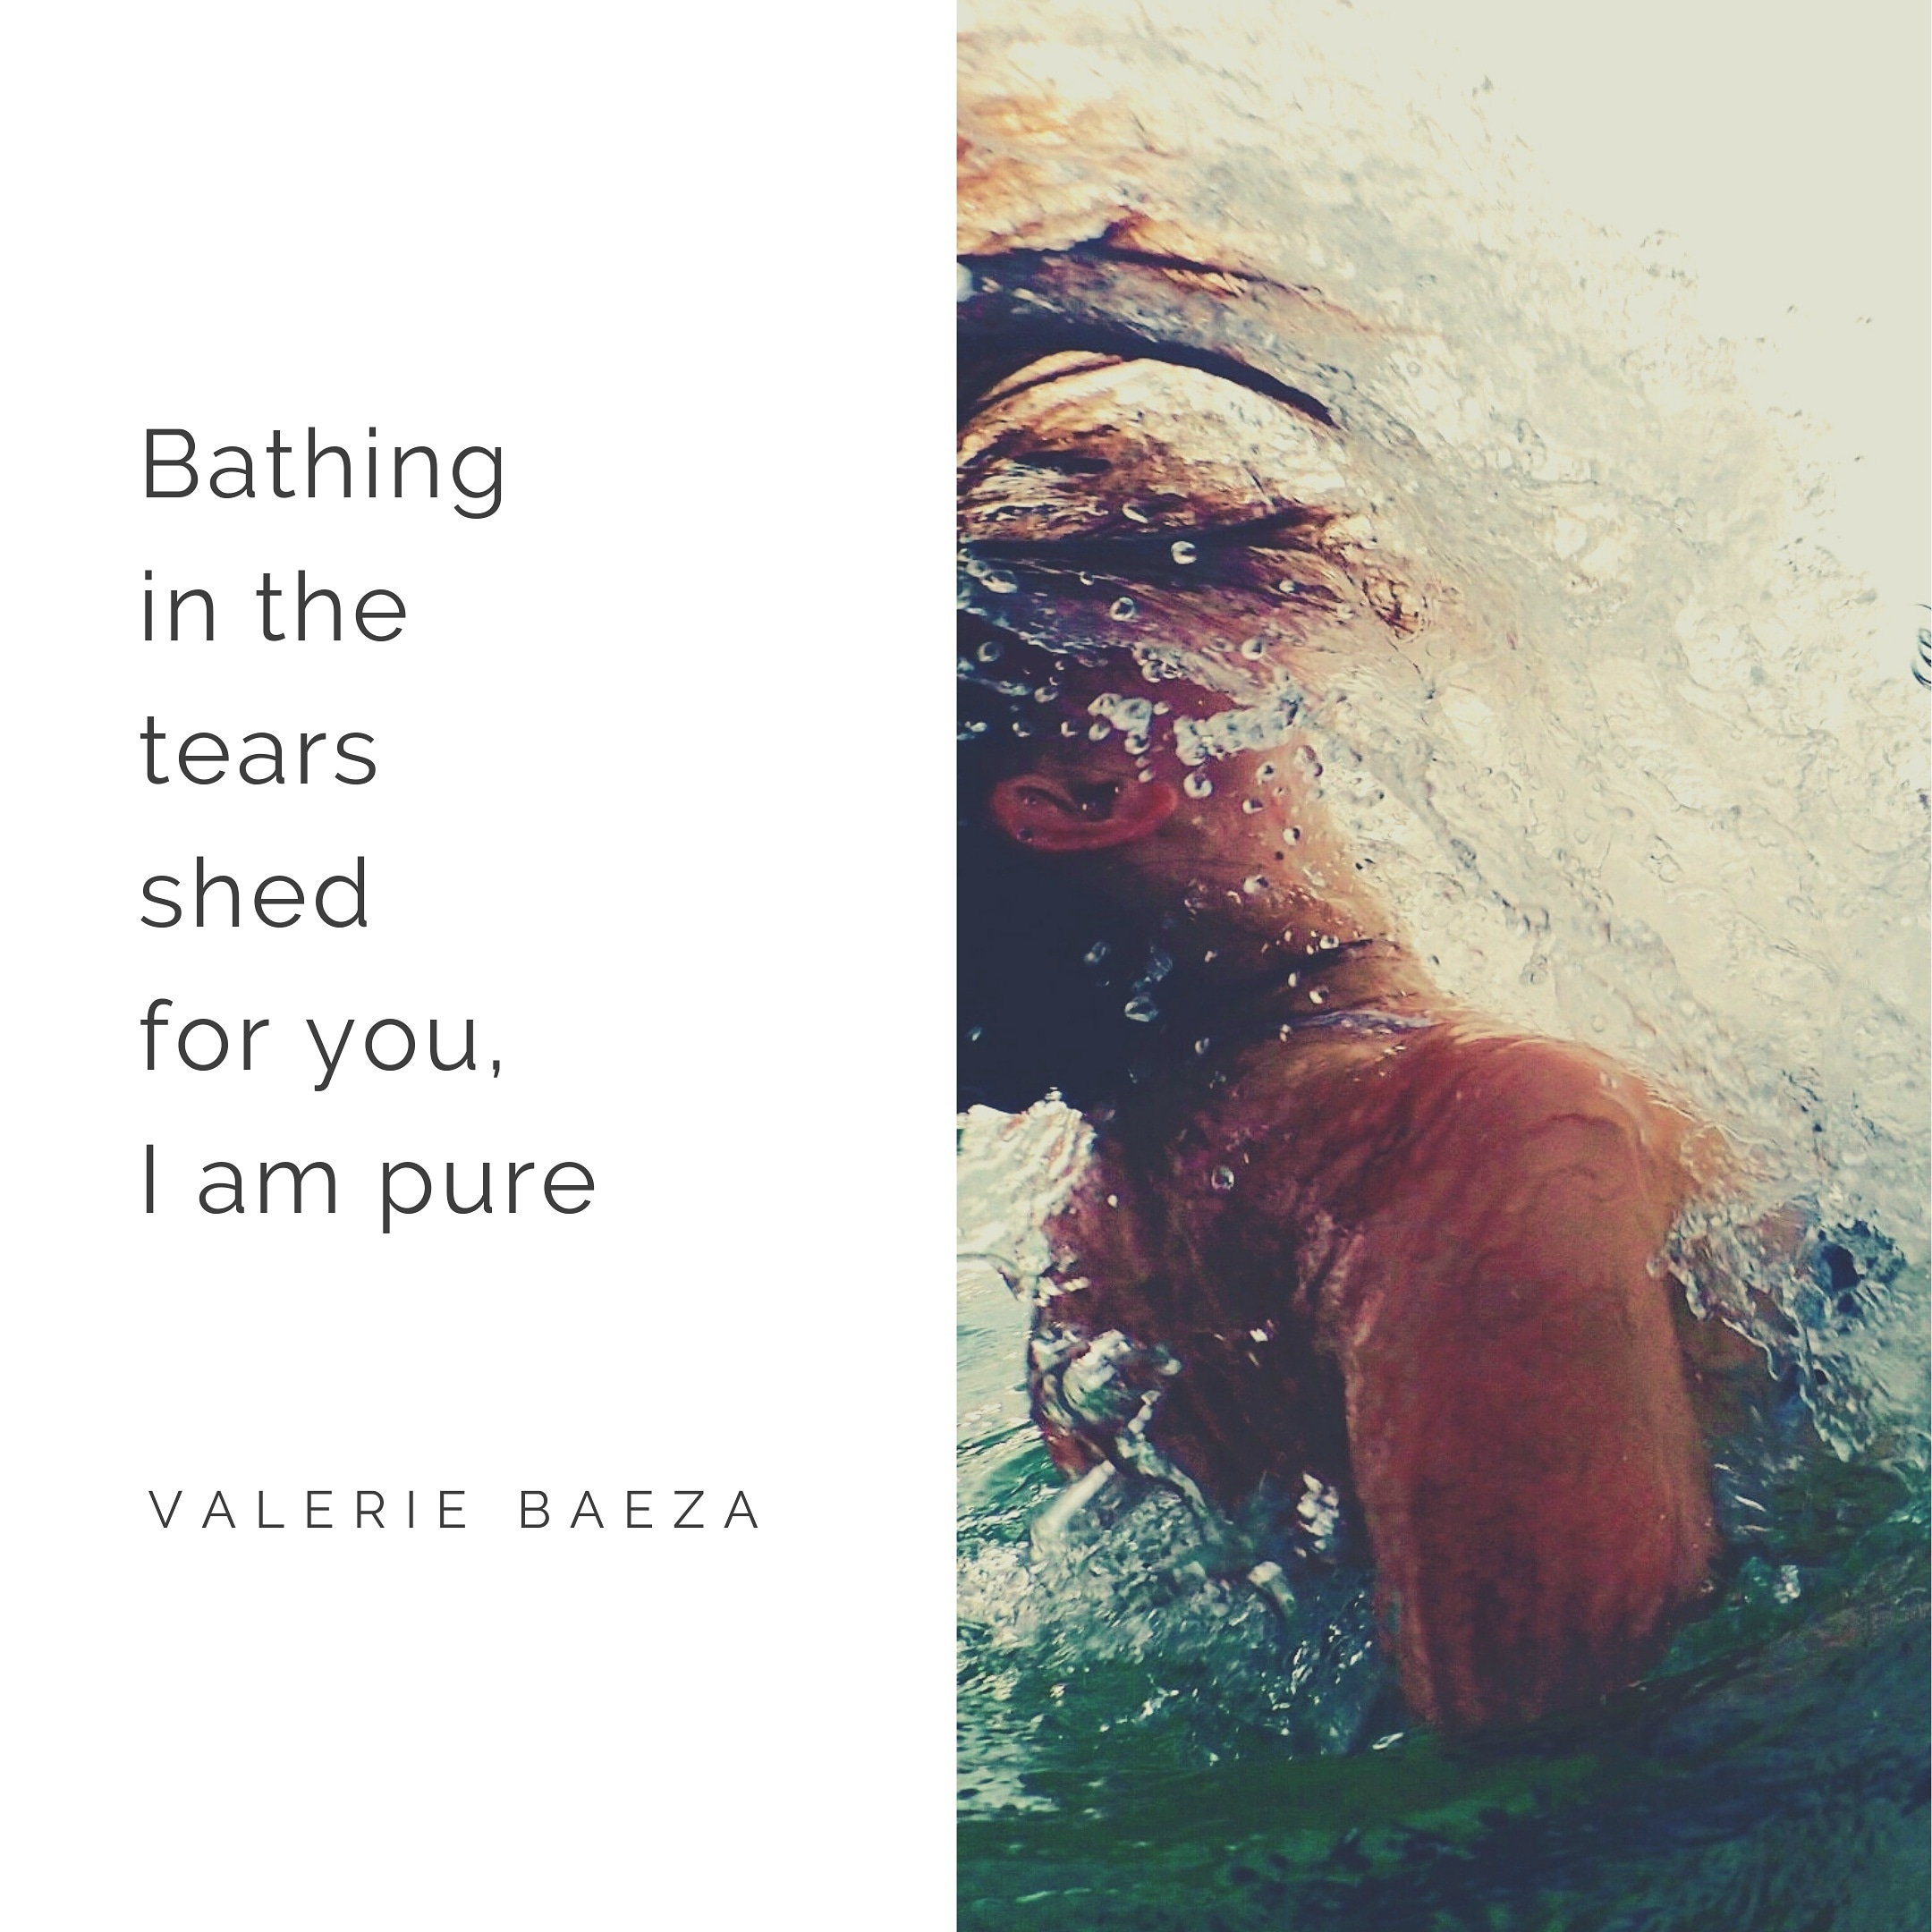 Bathing Tears by Valerie Baeza